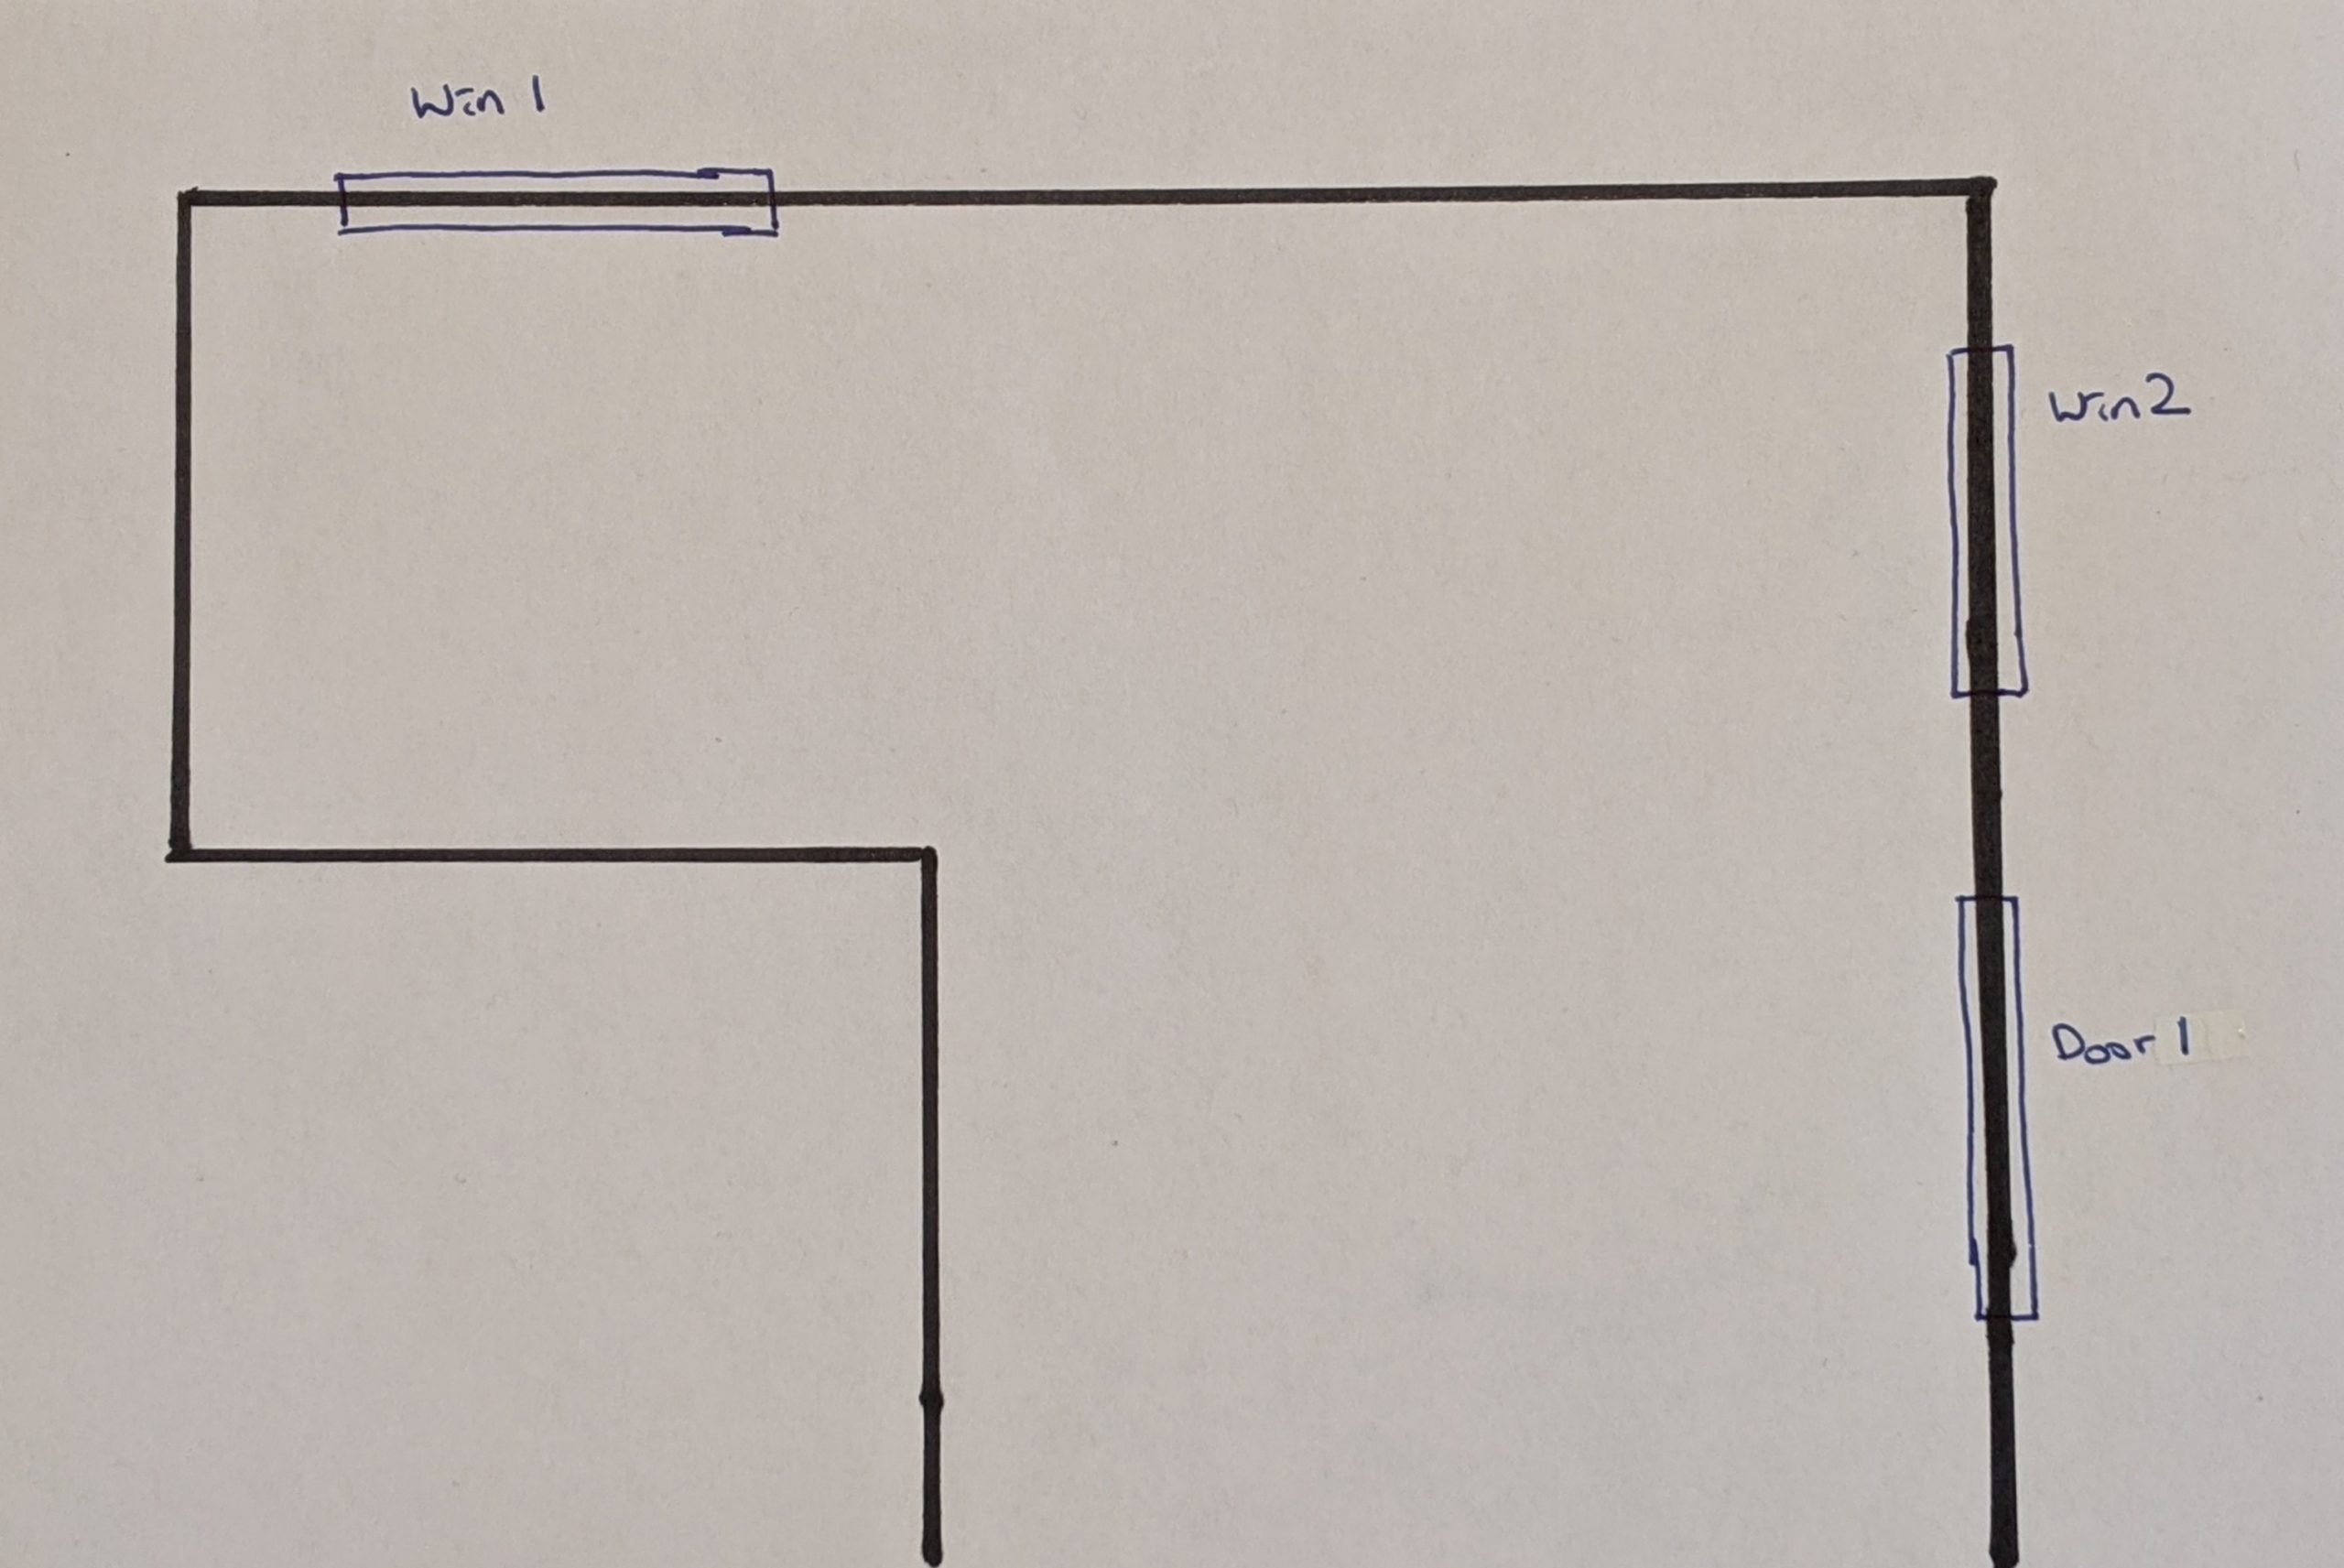 A sketch of the room with wall configuration